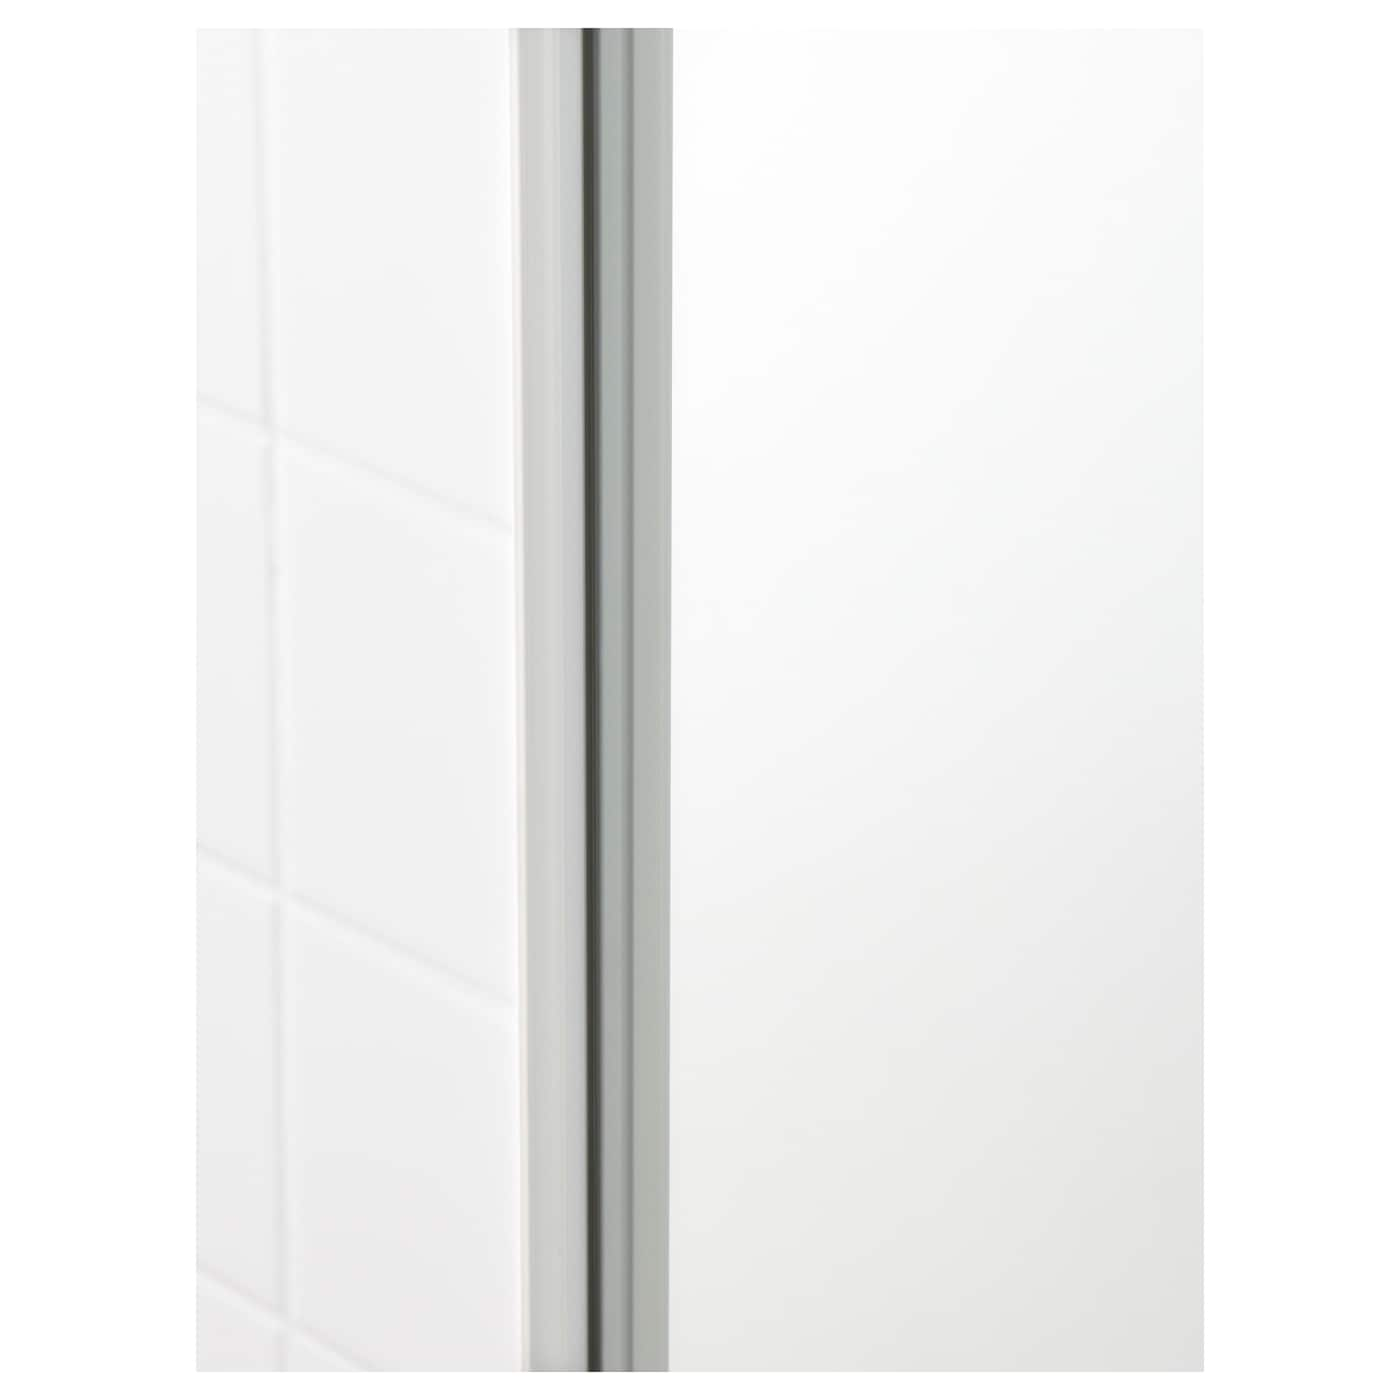 IKEA GODMORGON High Cabinet With Mirror Door You Can Mount The Door To Open  From The